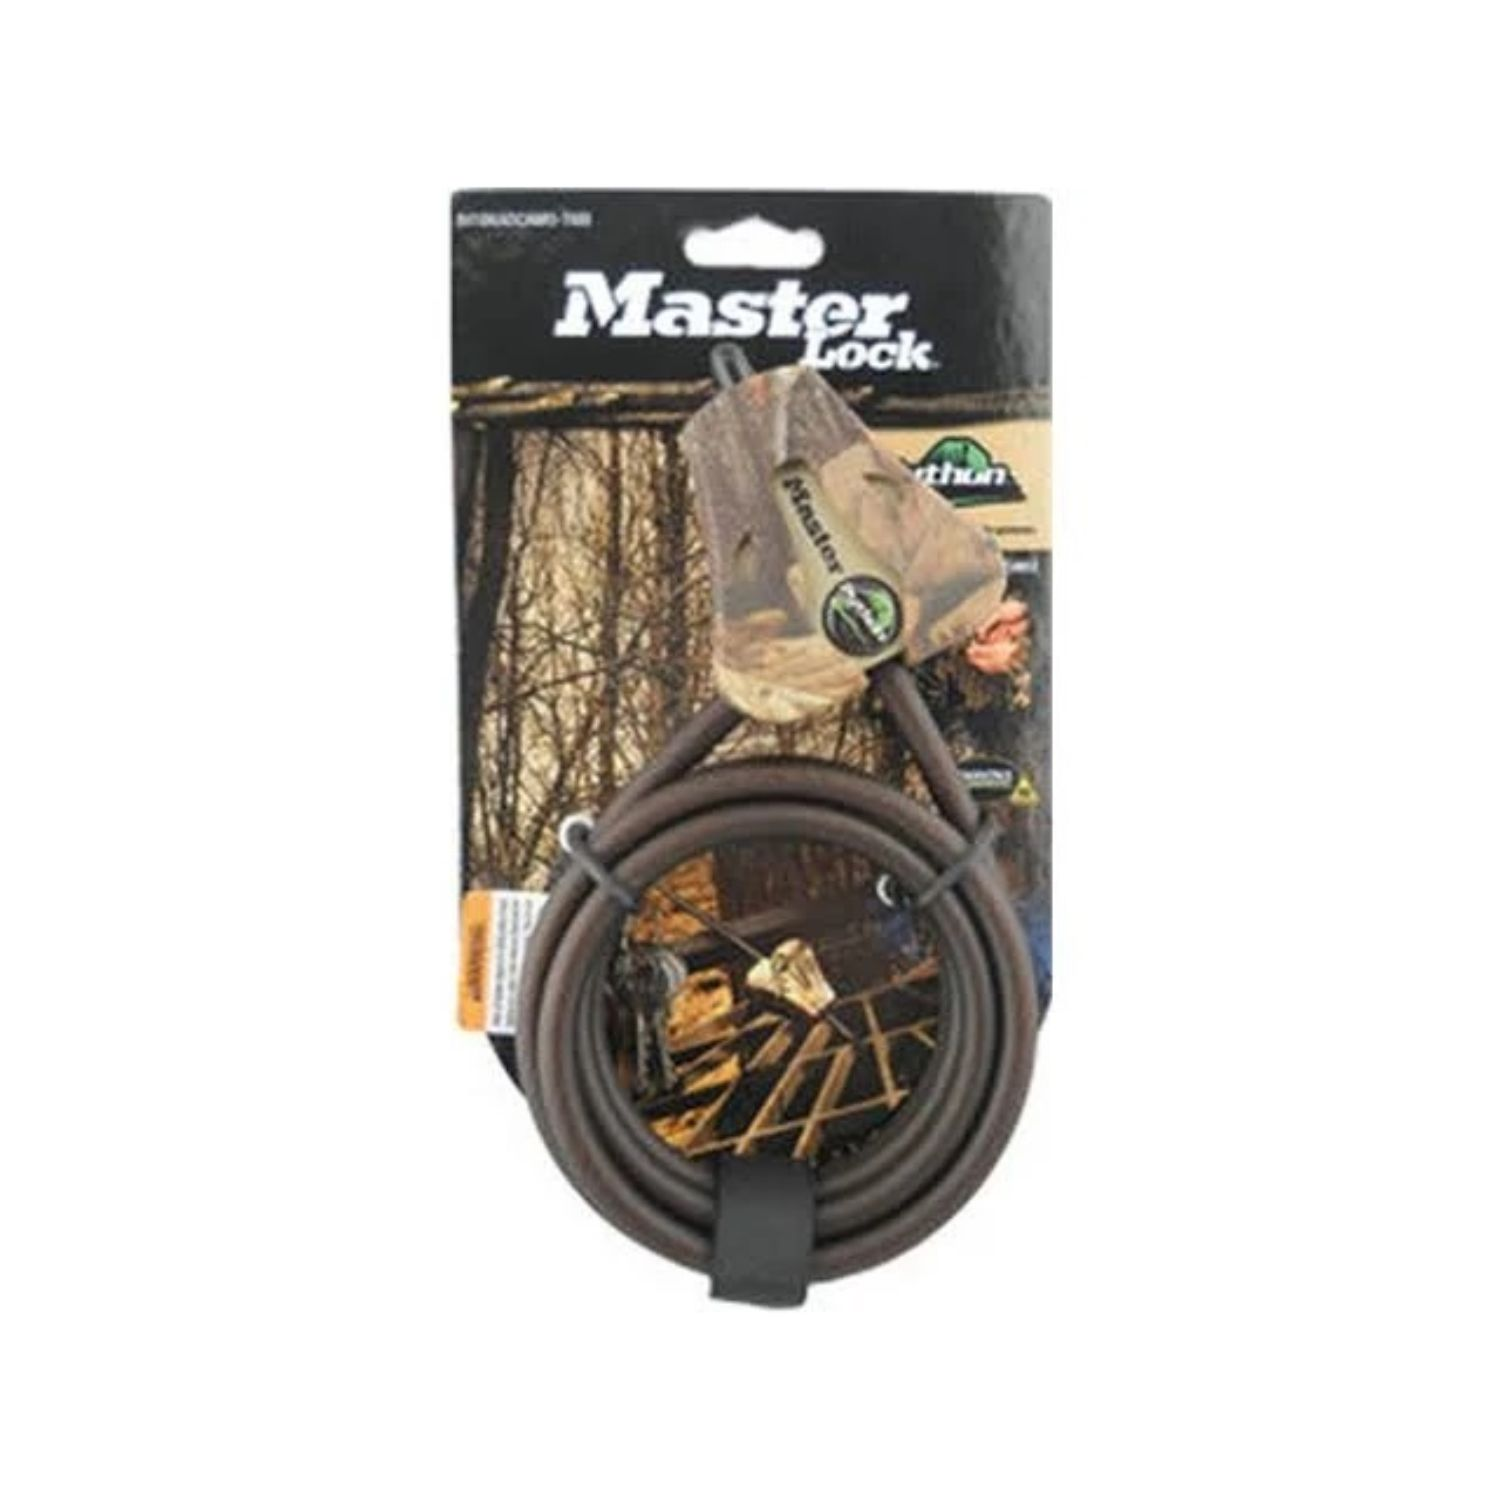 Covert 0.3125 in Master Lock Security Cable Camo Case of 4